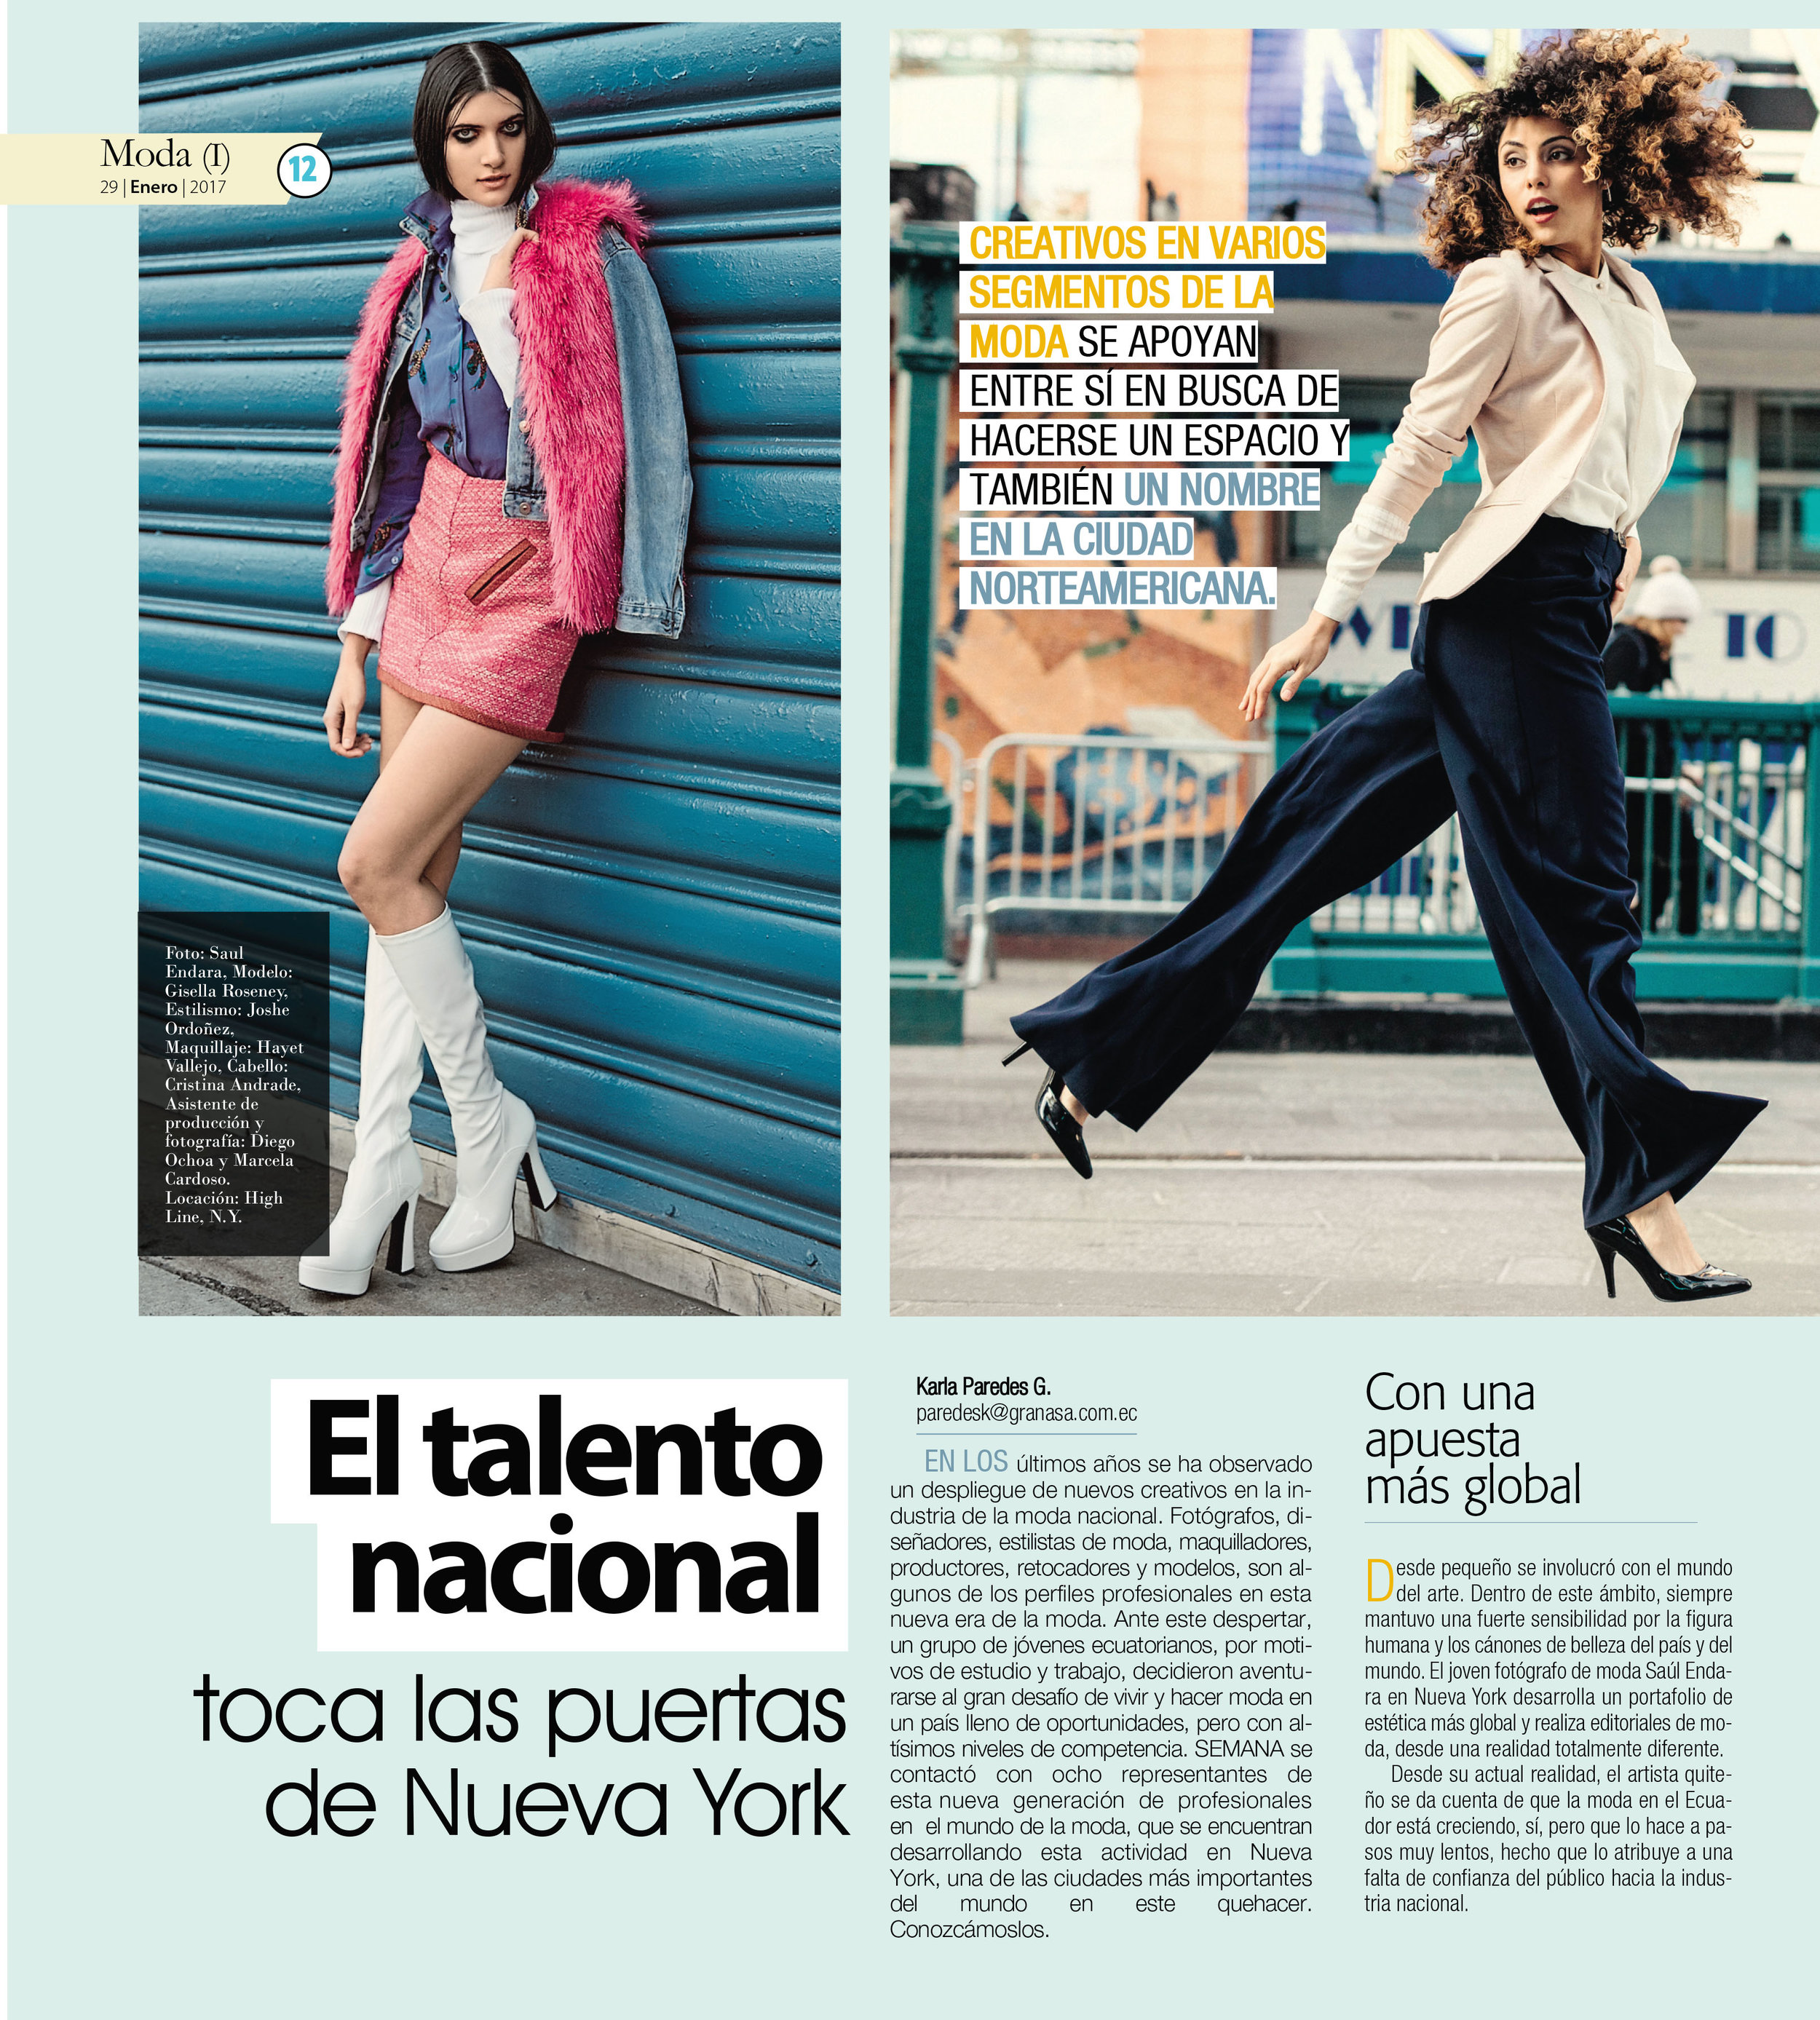 National Talent knock on the doors of New York  Semana Magazine, El Expreso, Jan 2017